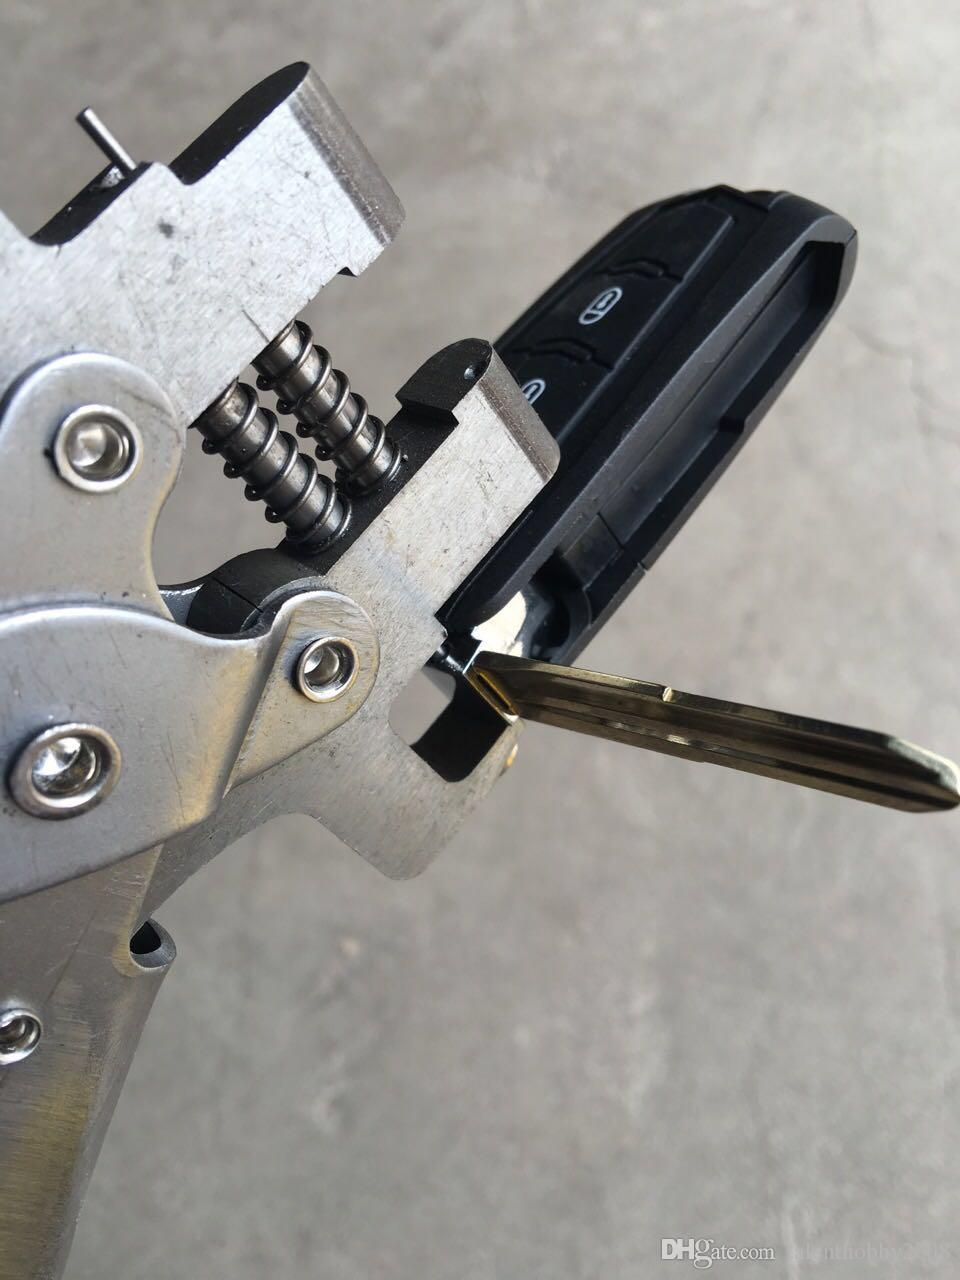 auto pick locksmith tools detachable connecting pliers for car remote control